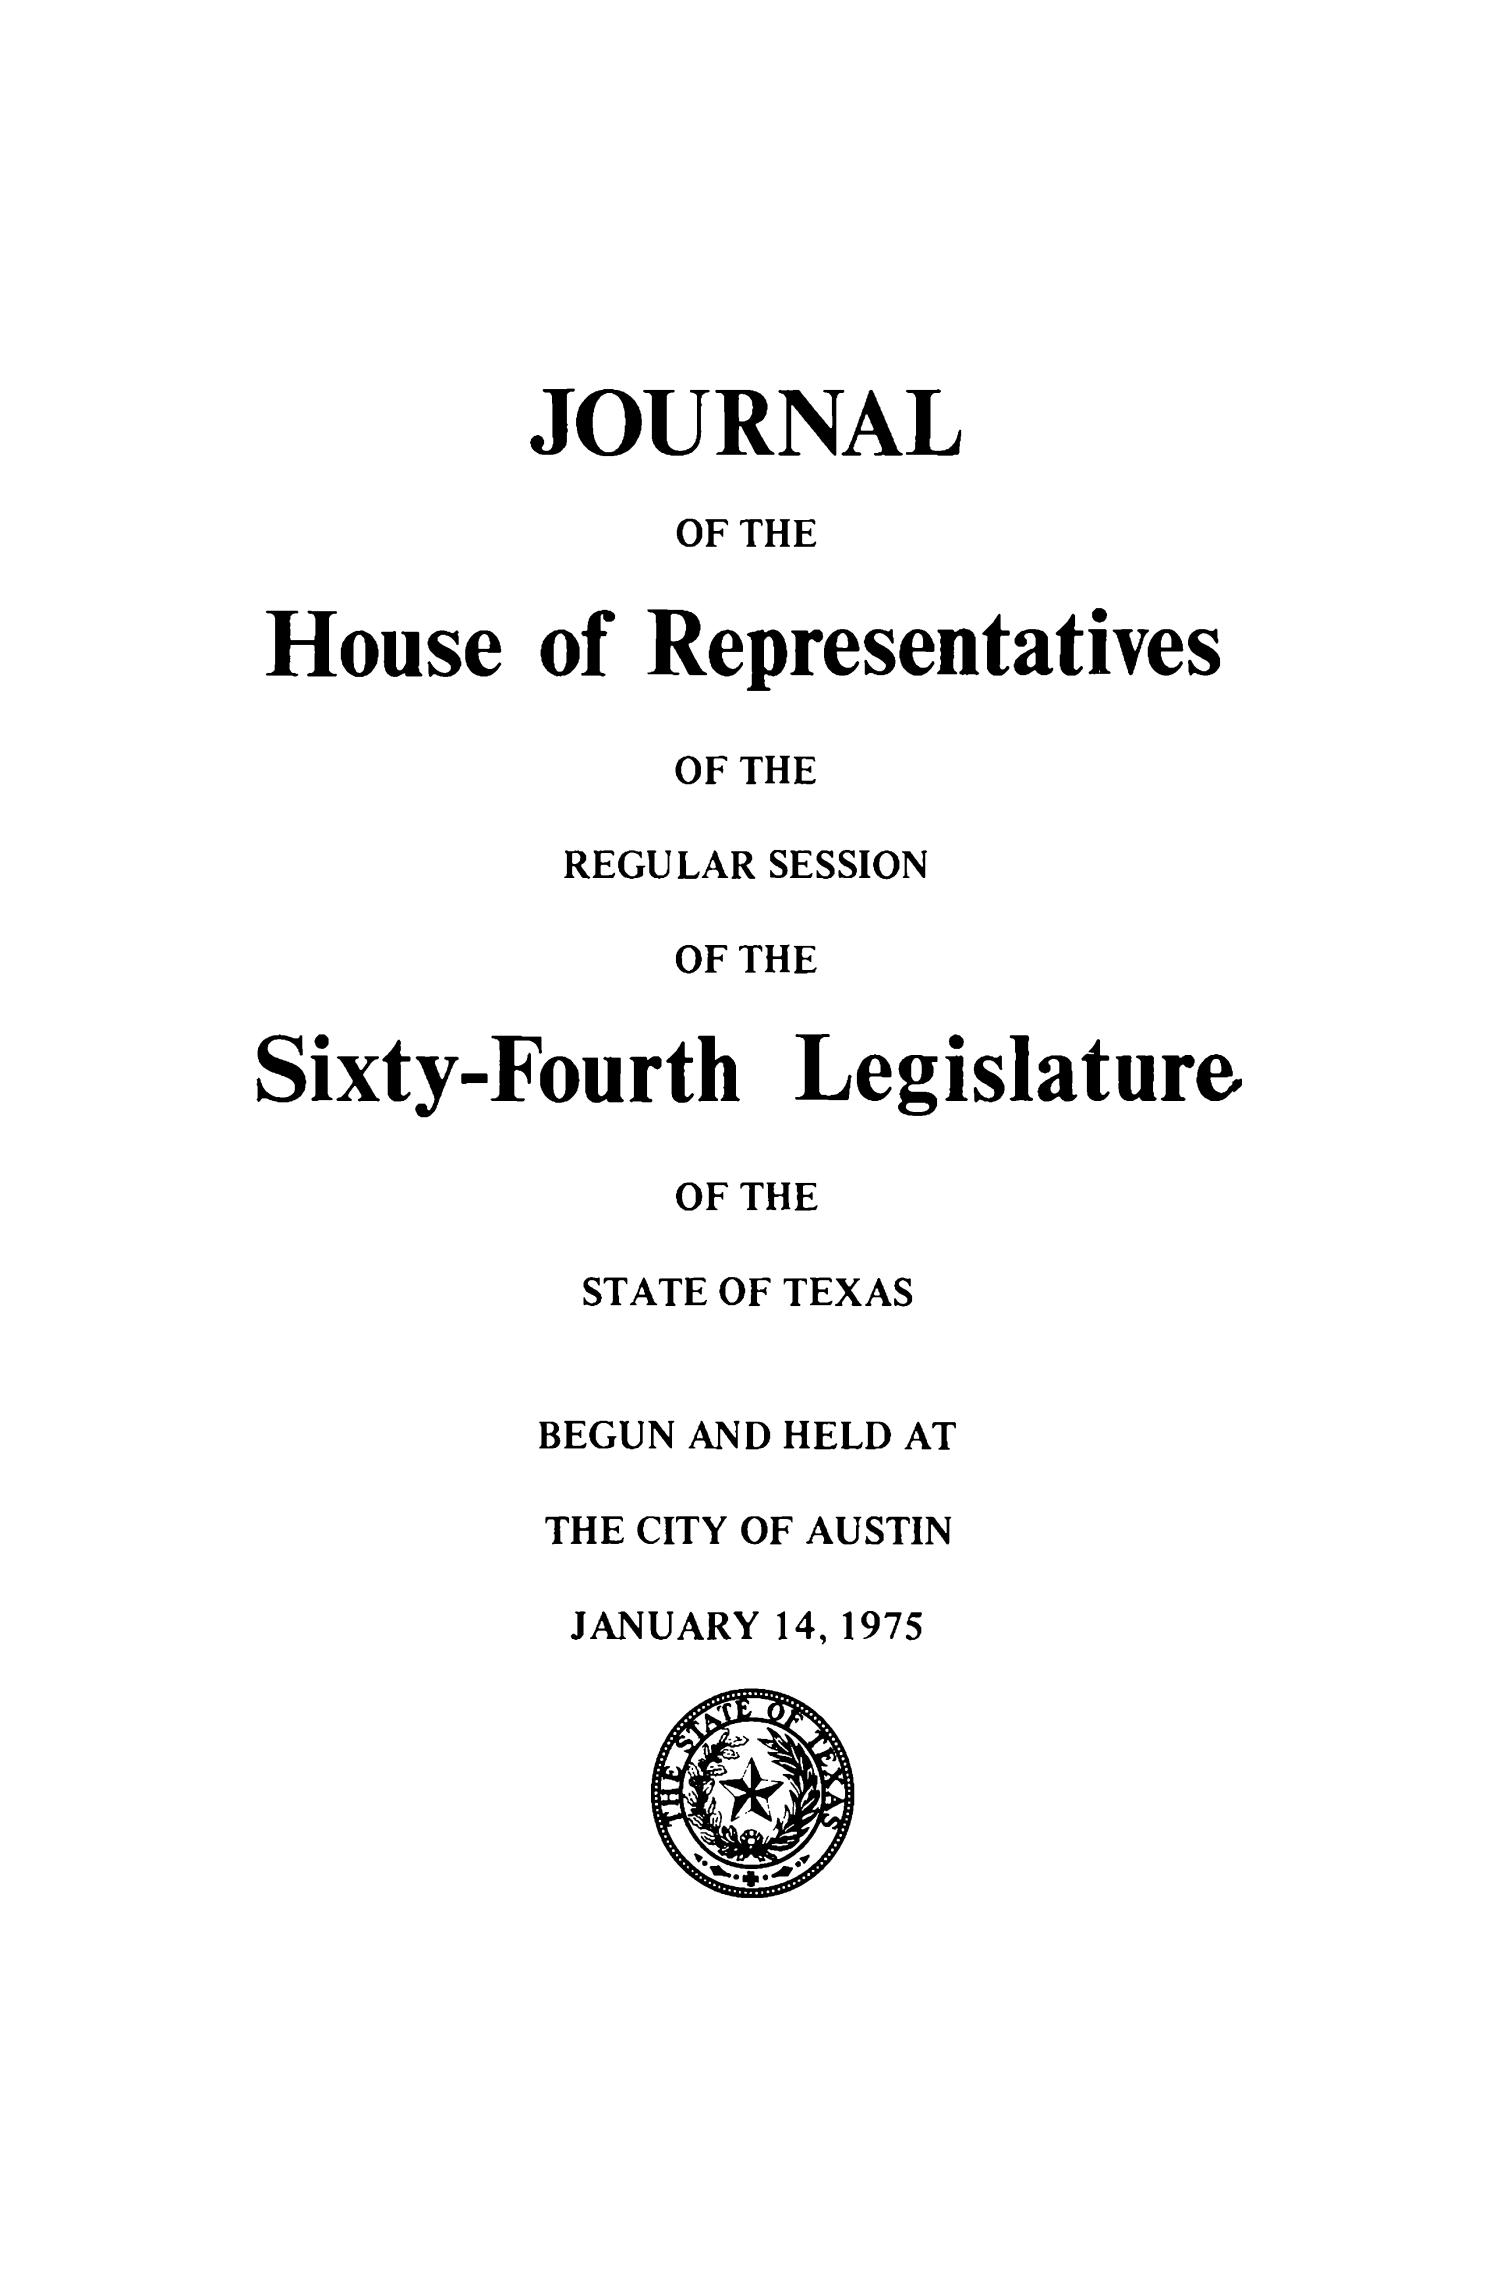 Journal of the House of Representatives of the Regular Session of the Sixty-Fourth Legislature of the State of Texas, Volume 1                                                                                                      Title Page